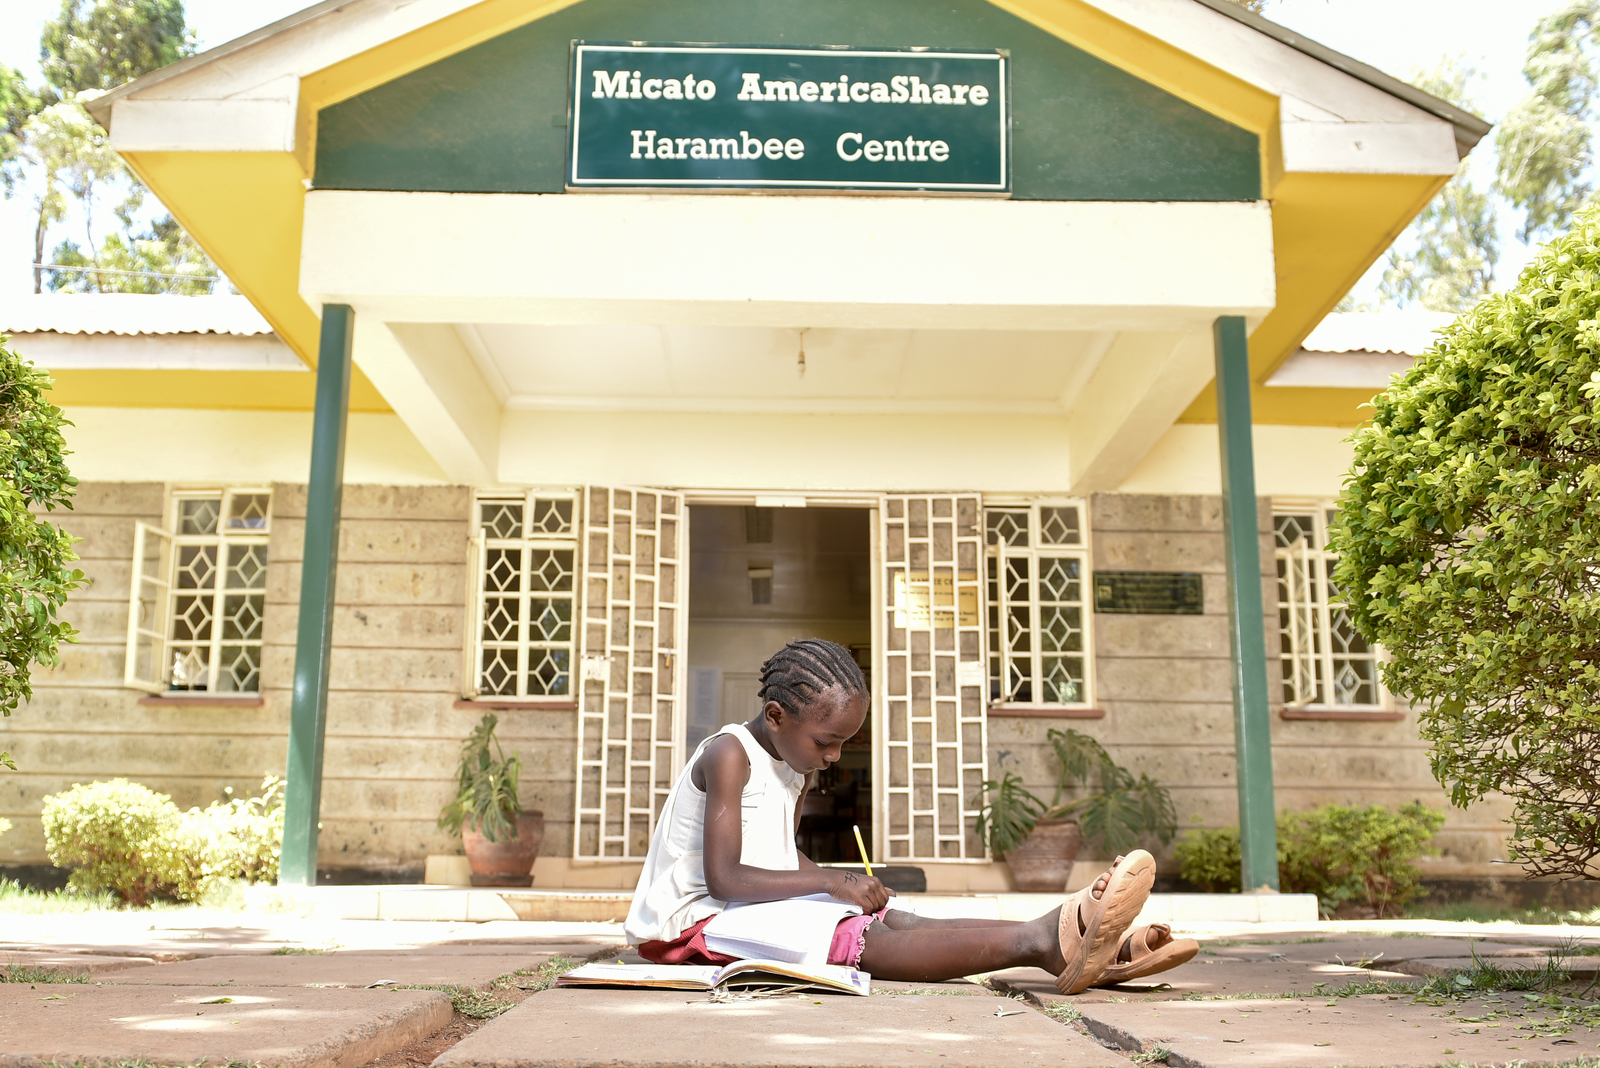 a girl sitting in front of the Micato AmericaShare's Harambee Centre